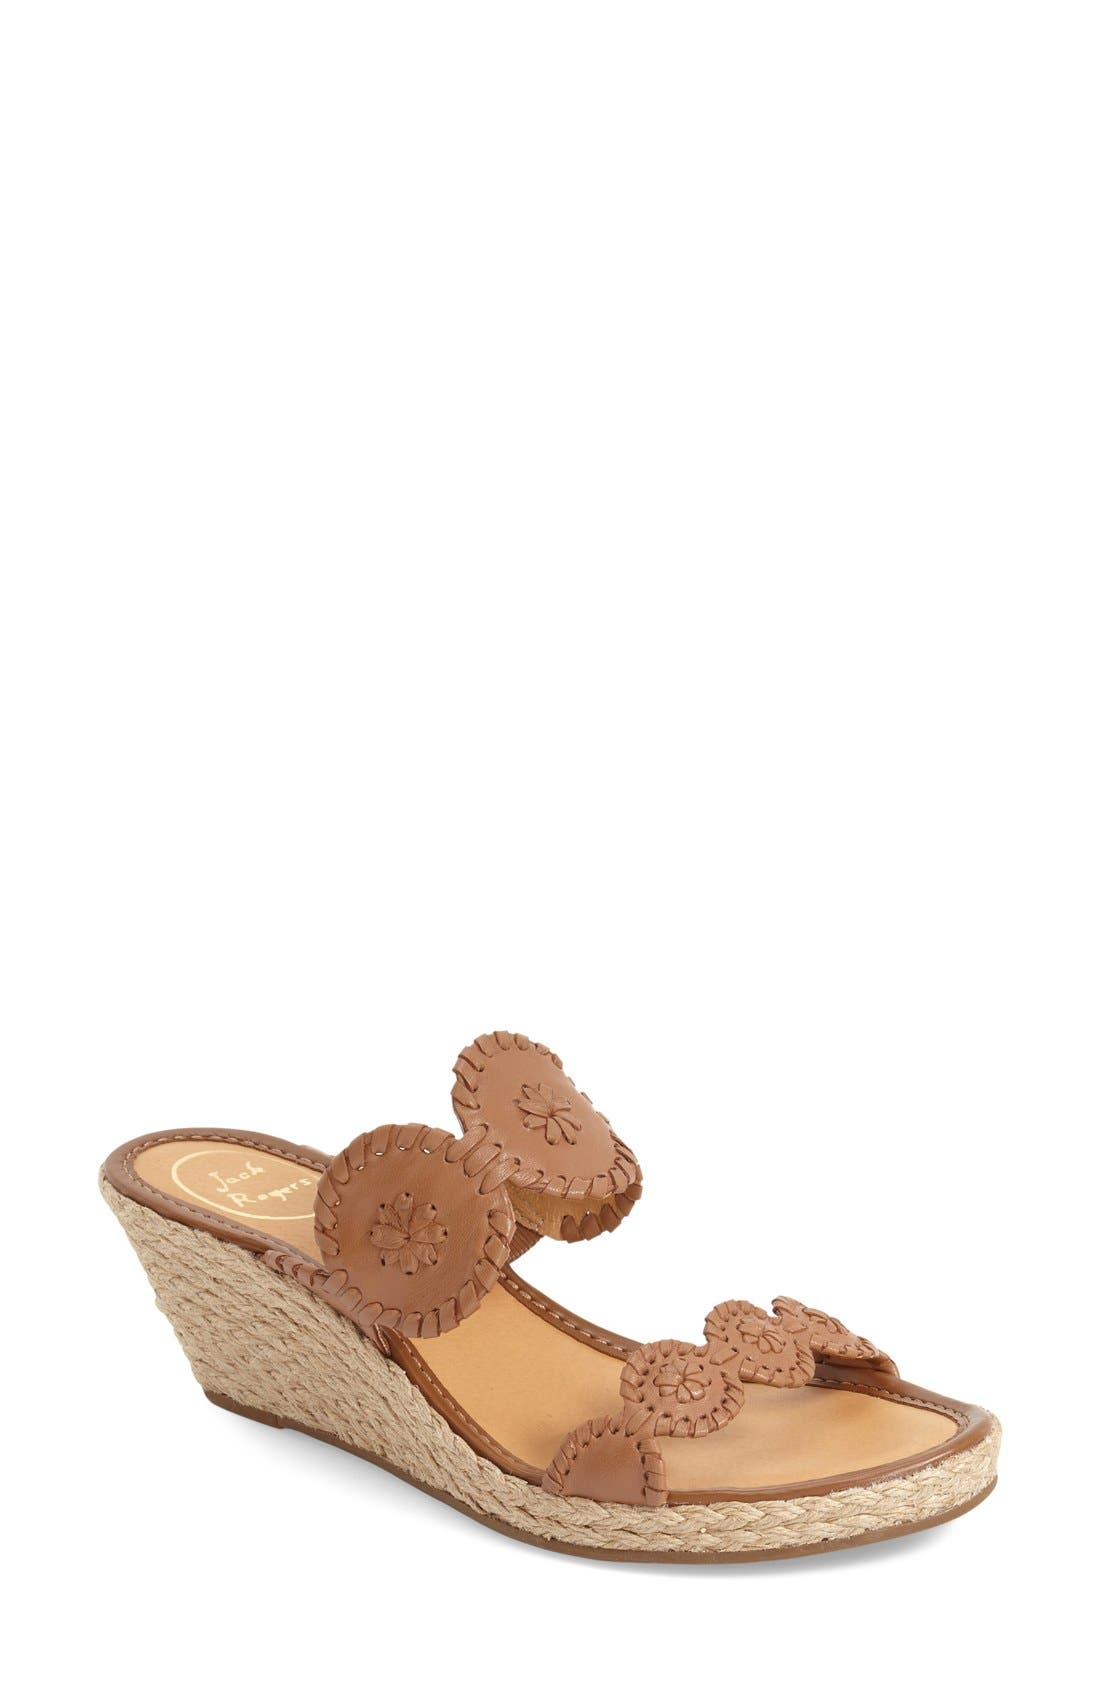 'Shelby' Whipstitched Wedge Sandal,                         Main,                         color, COGNAC